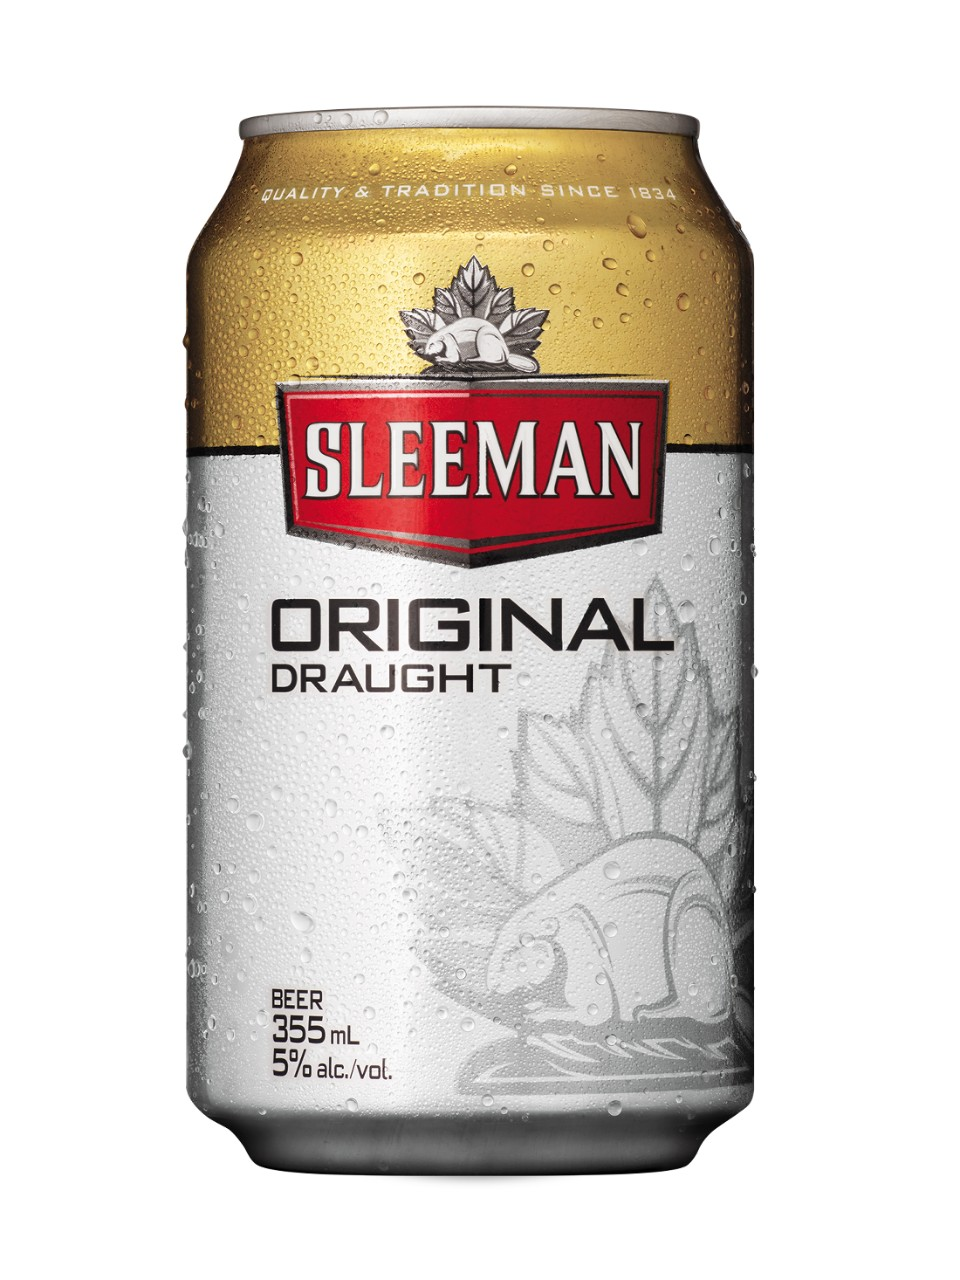 Sleeman Original Draught - Single Can - Save 0.30 Per Can!!